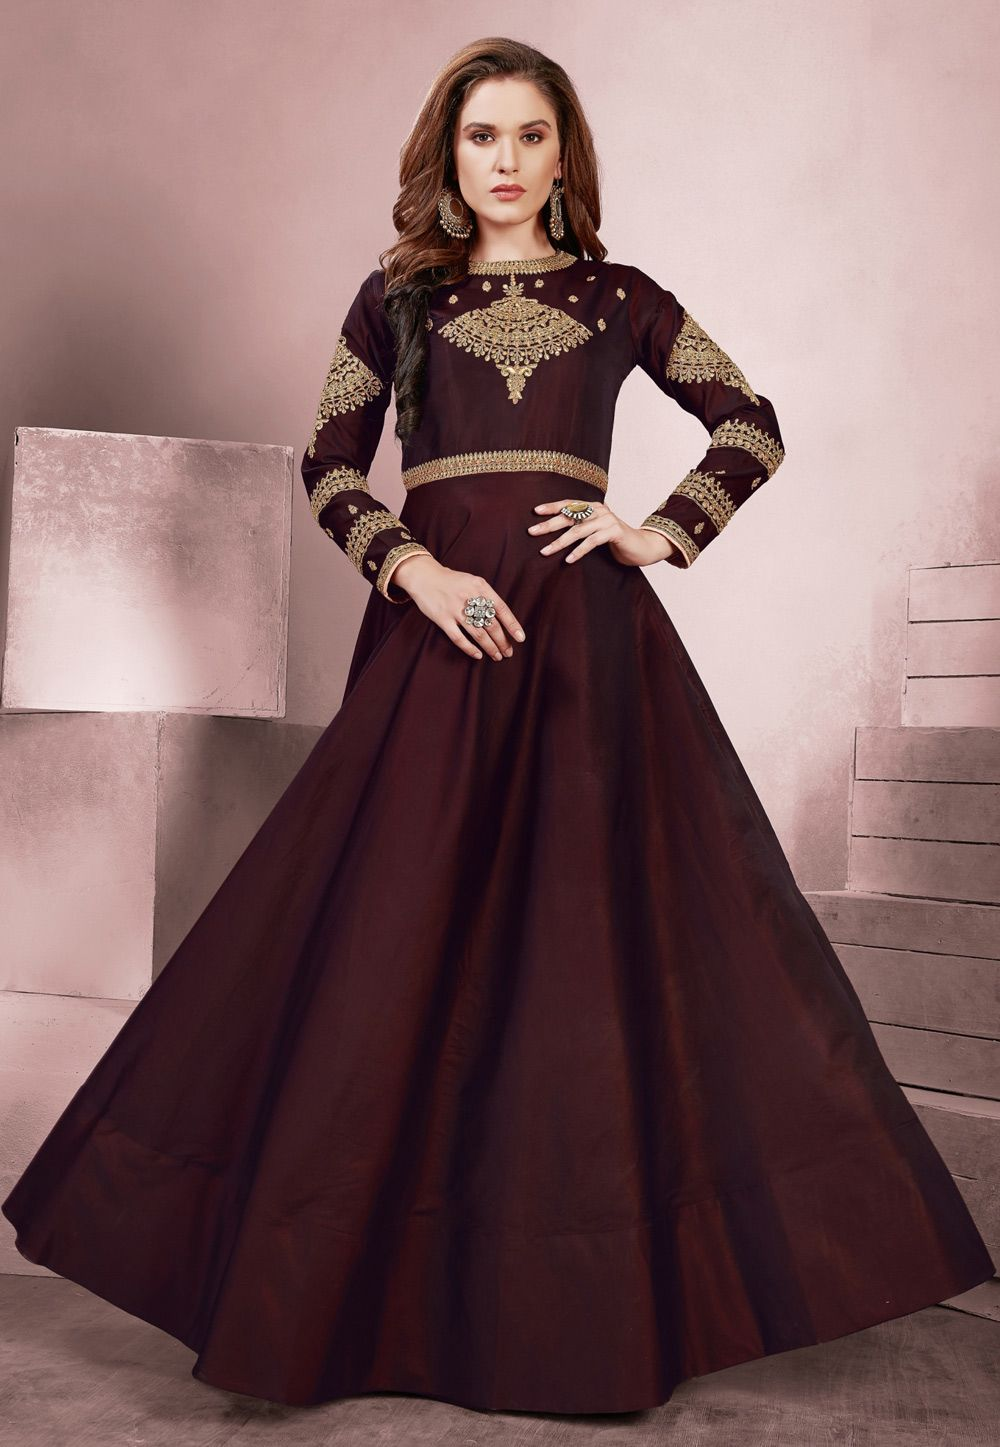 98dad98f4e3 Shop Wine Taffeta Readymade Party Wear Gown 155021 online at best price  from vast collection of designer kurti at Indianclothstore.com.